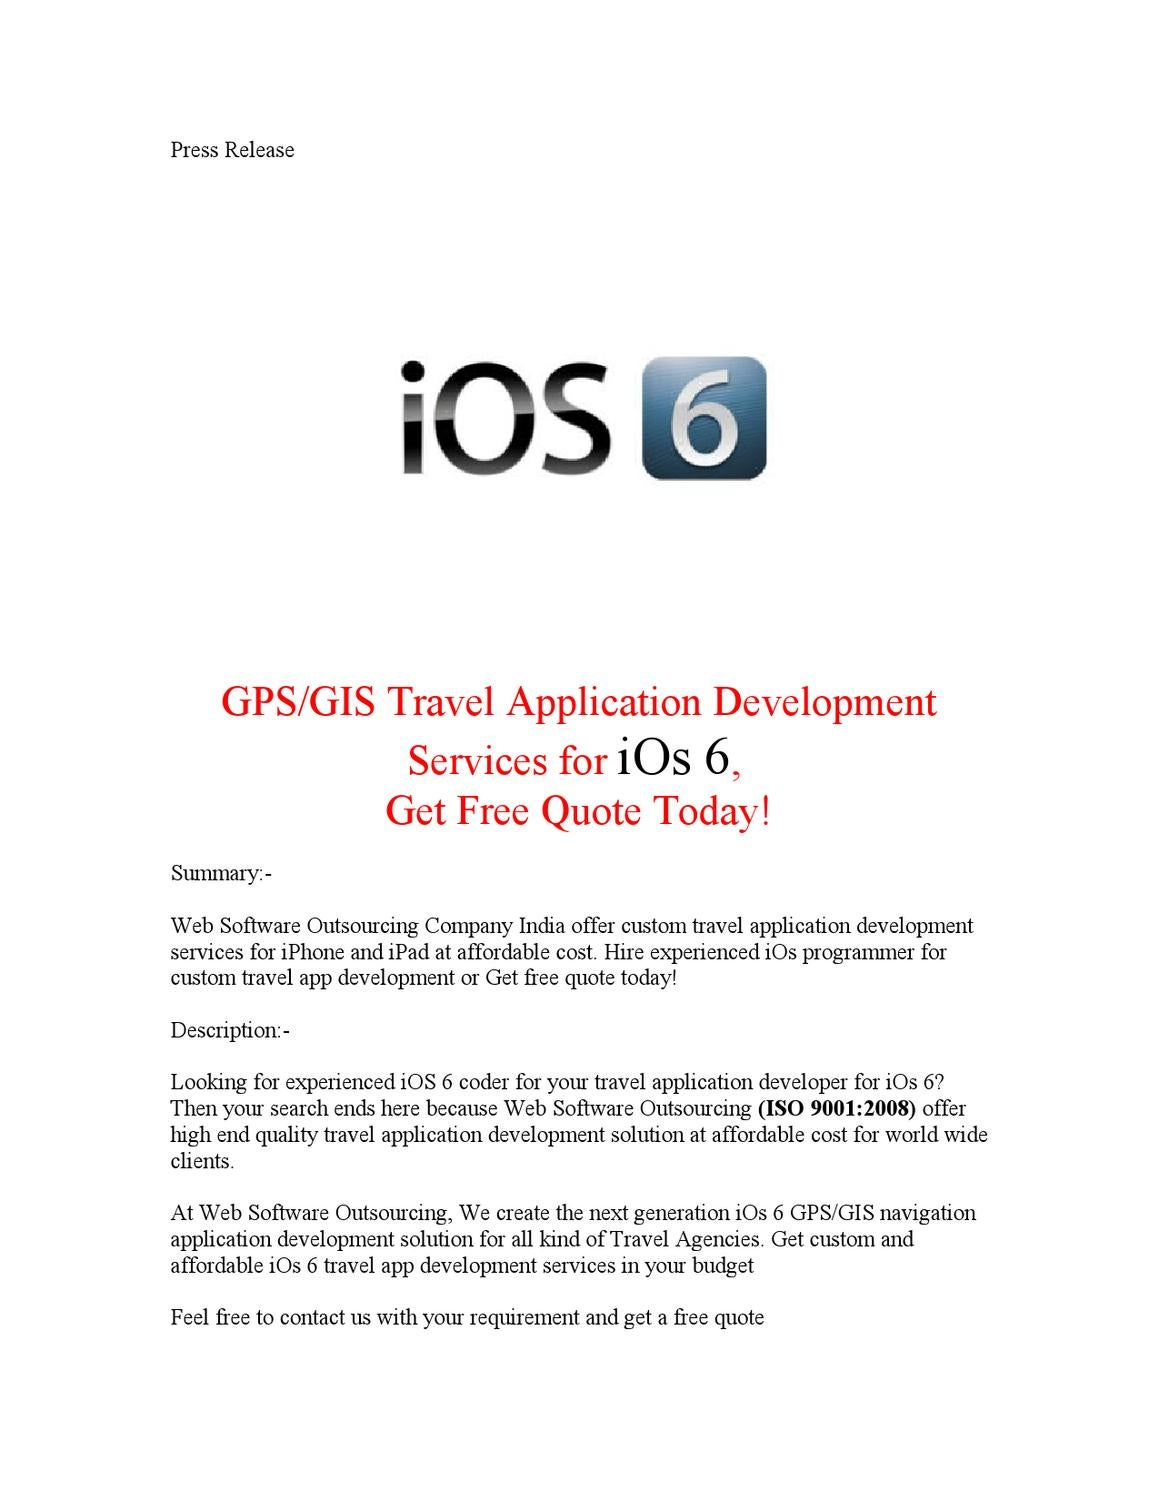 GPS/GIS Travel Application Development Services for iOs 6, Get Free